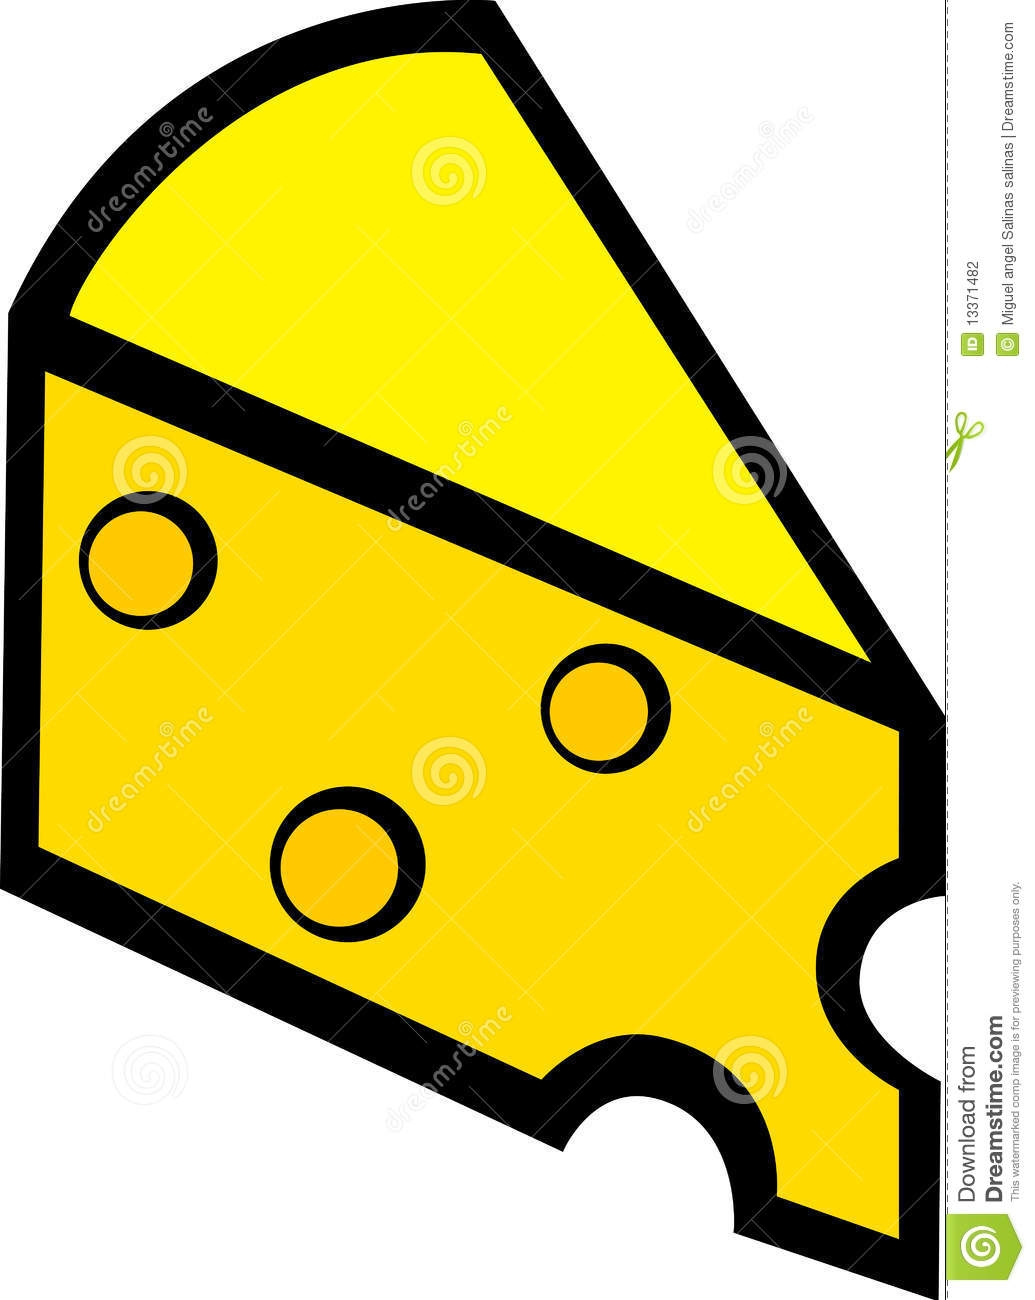 Cheese Clipart & Cheese Clip Art Images.